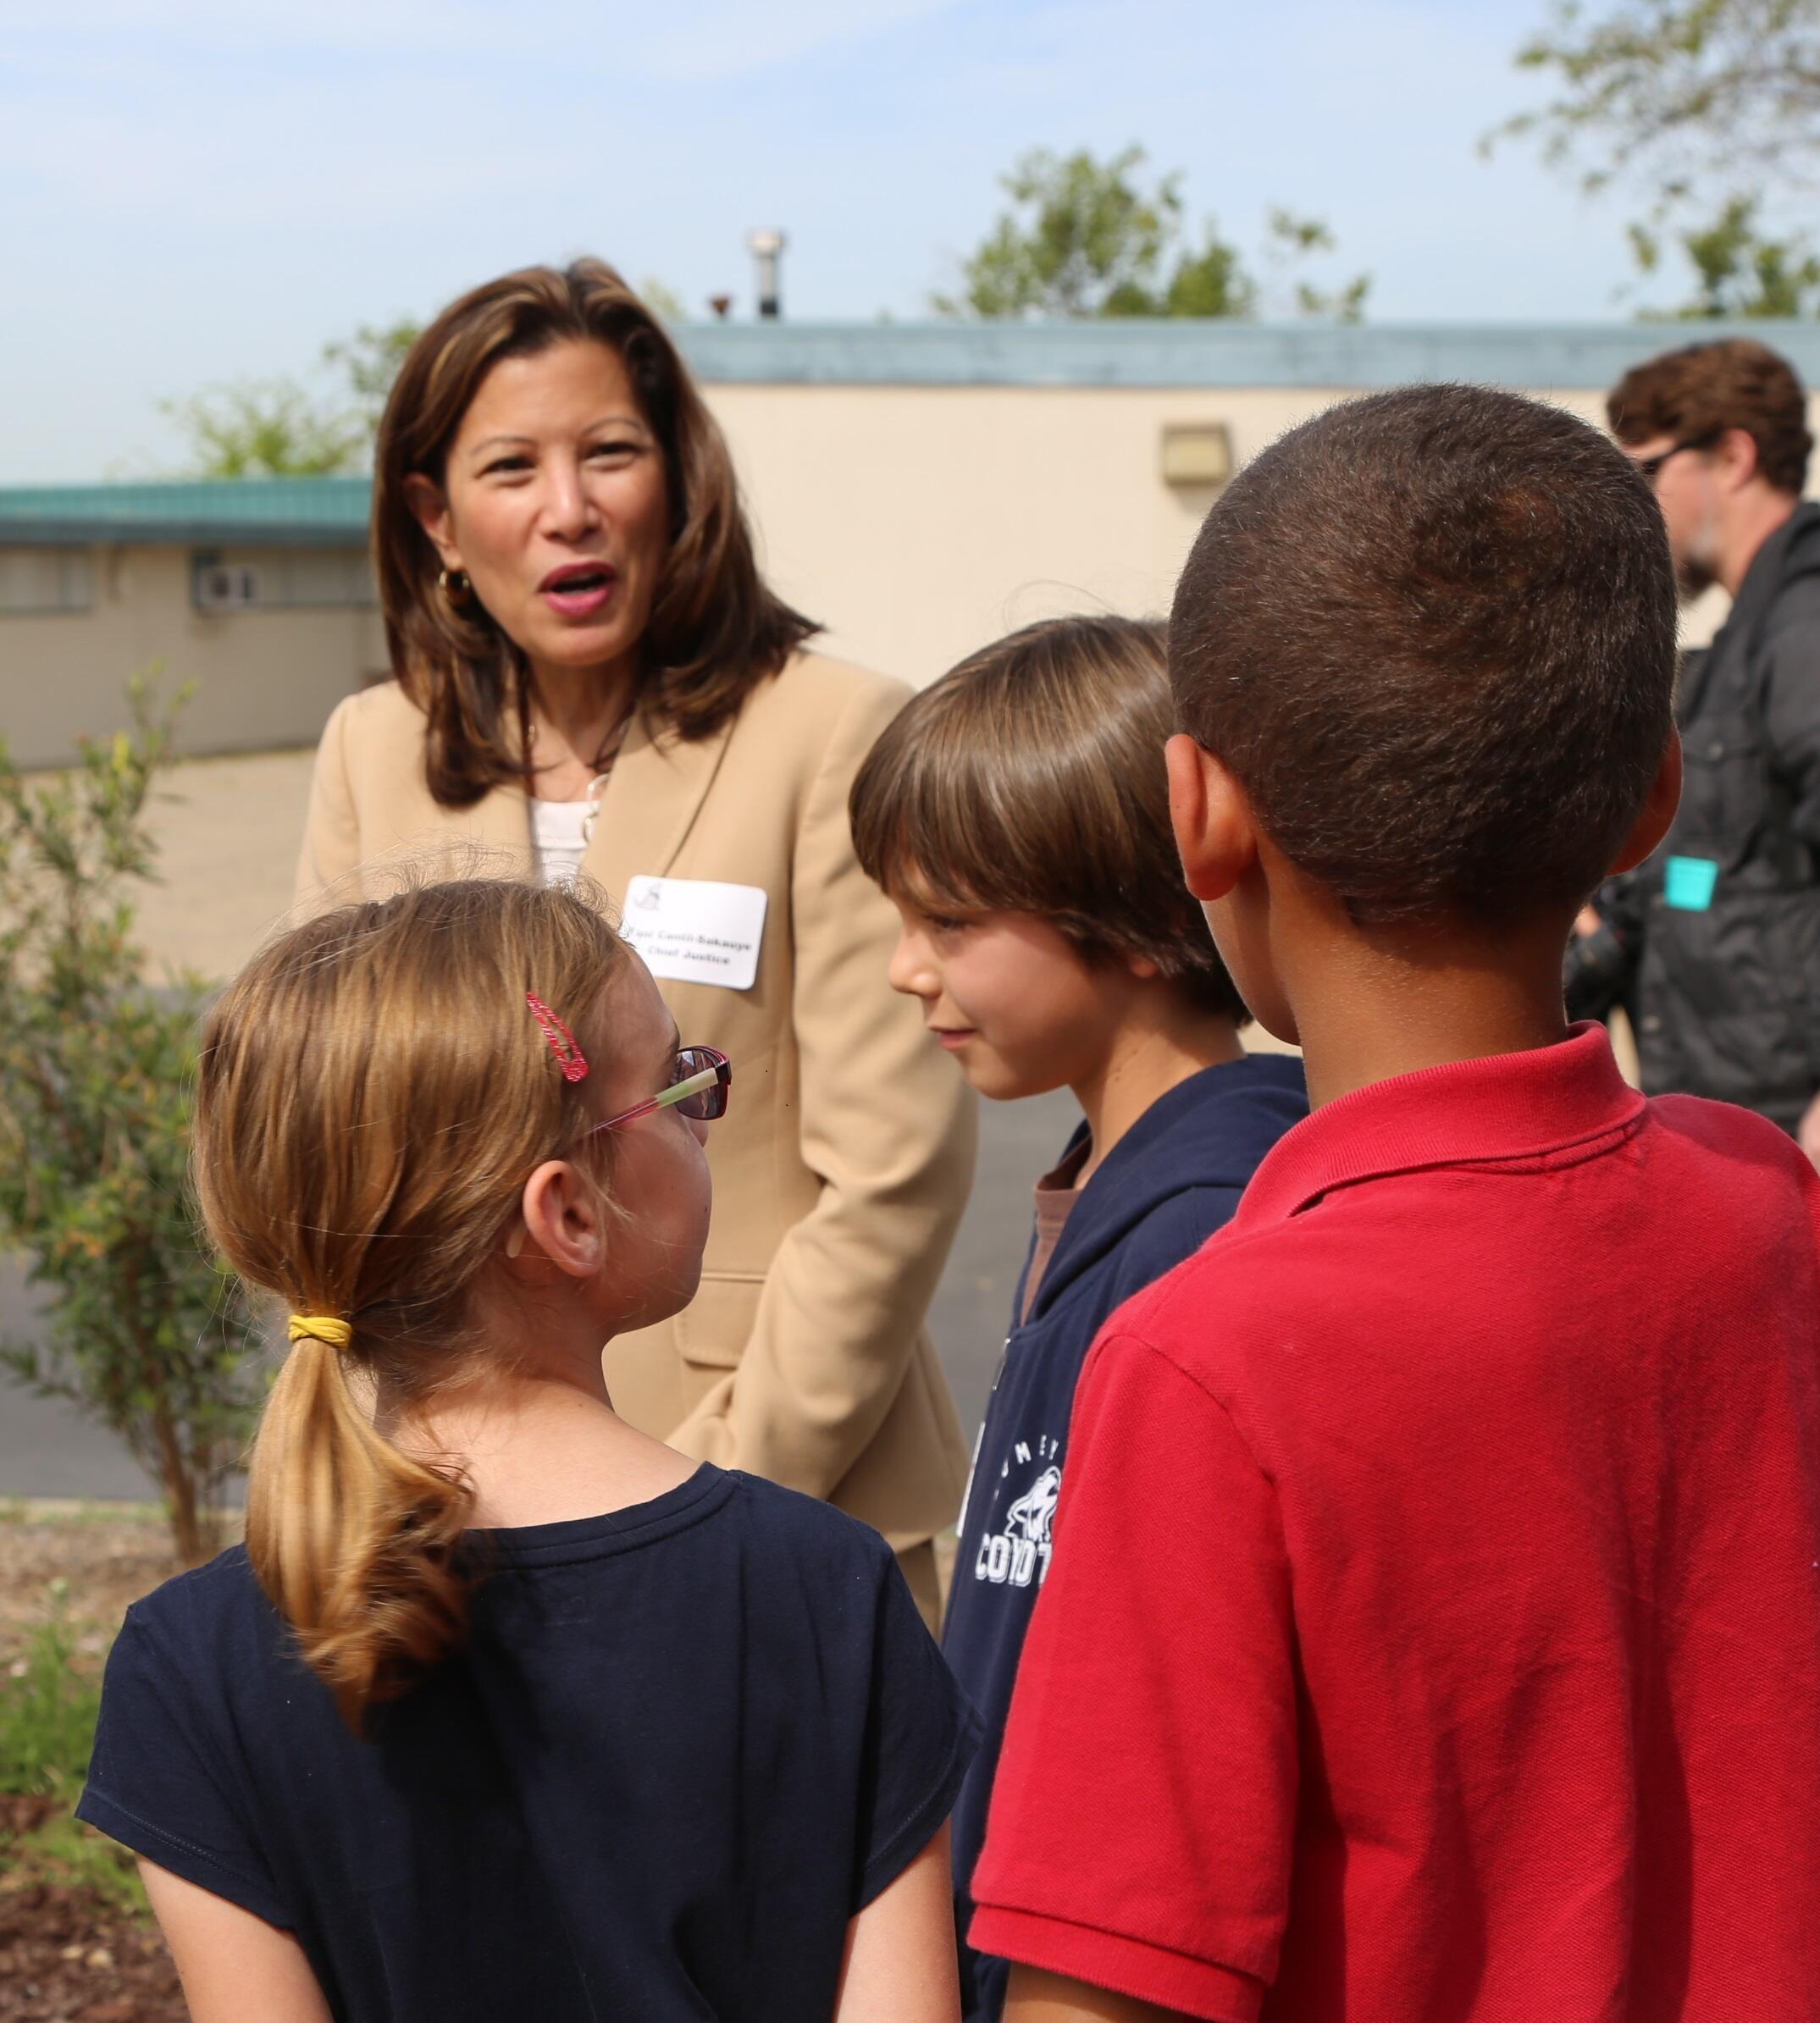 Chief Justice visits Civic Award Learning School